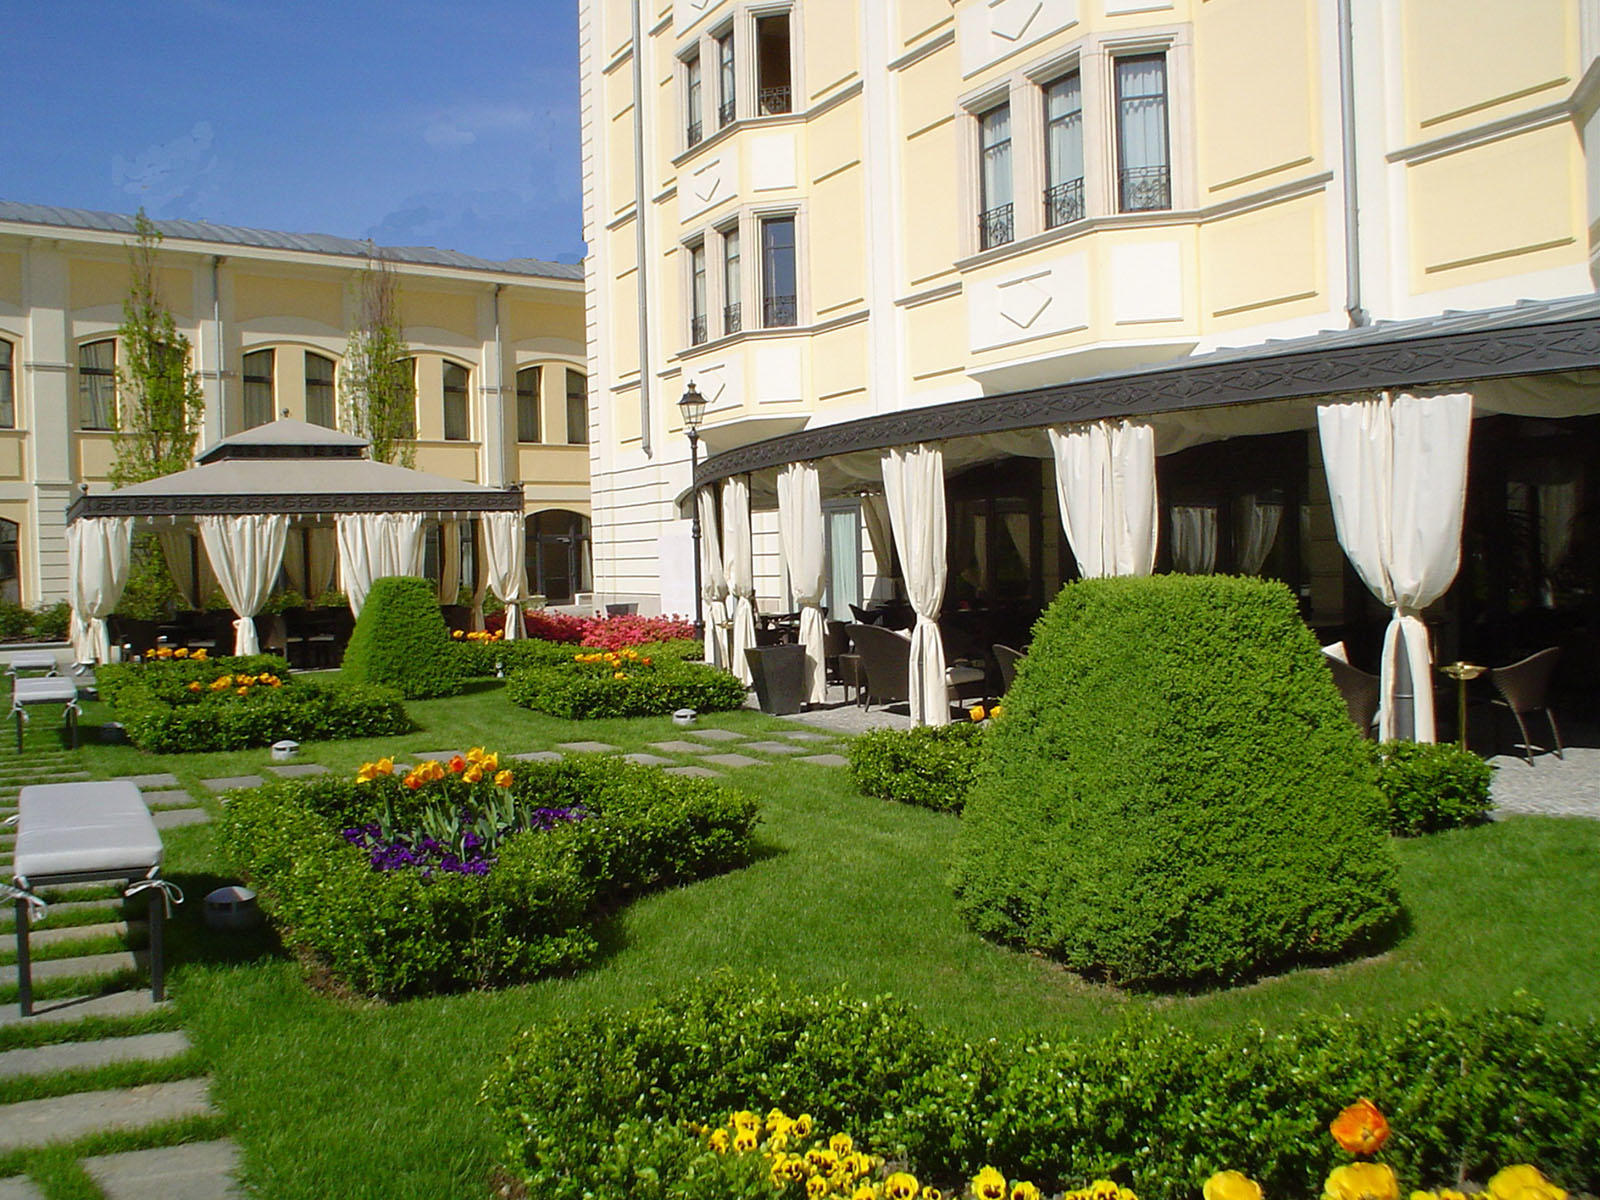 Garden at Grand Visconti Palace in Milan